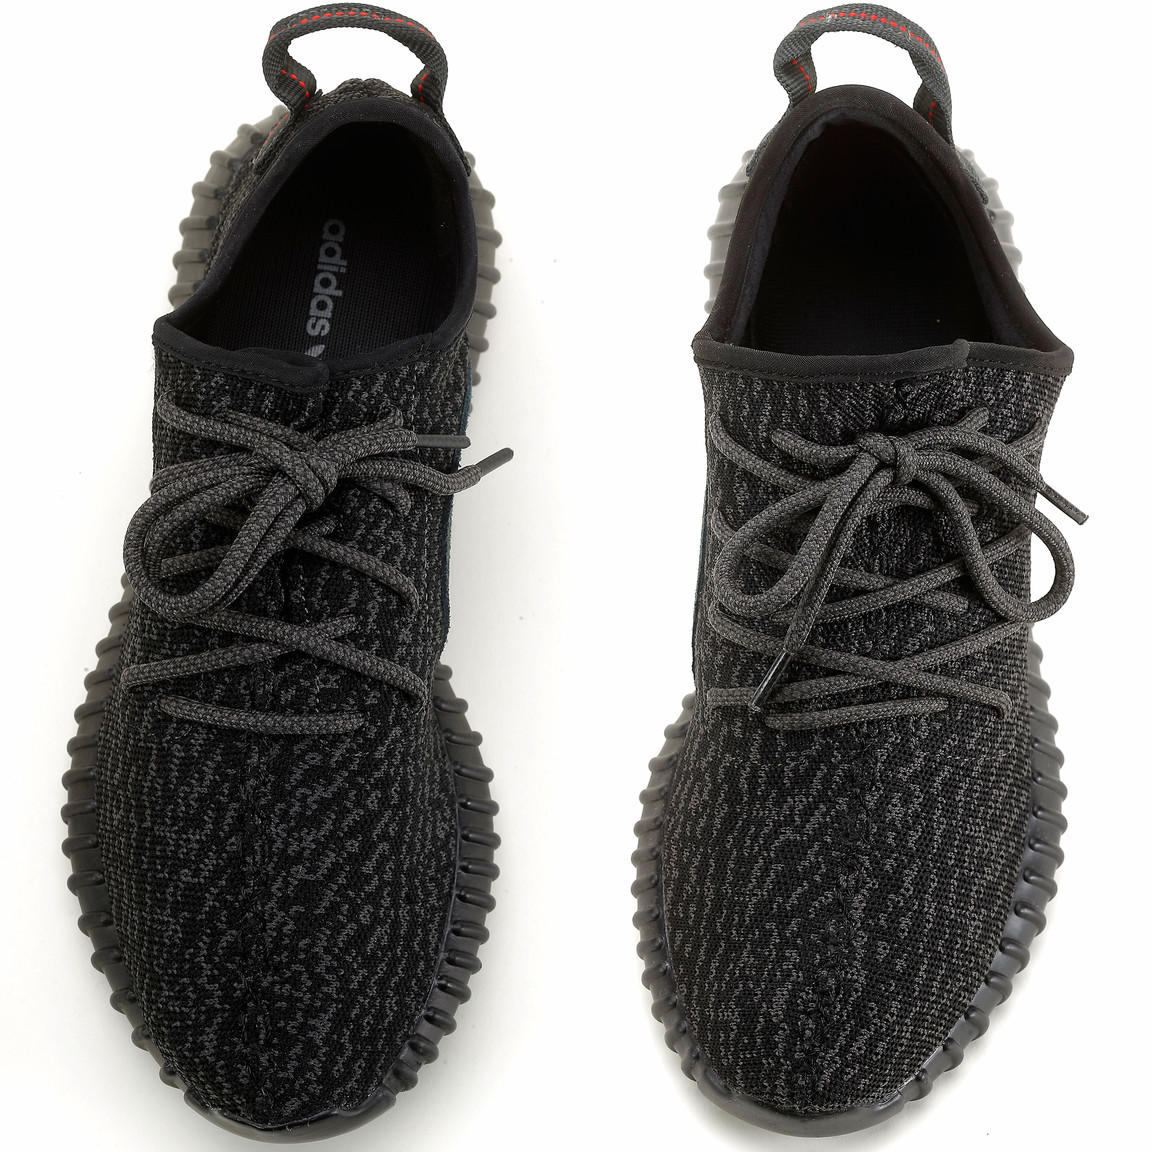 This Composite Image Shows An Authentic Yeezy Left Beside A Replica